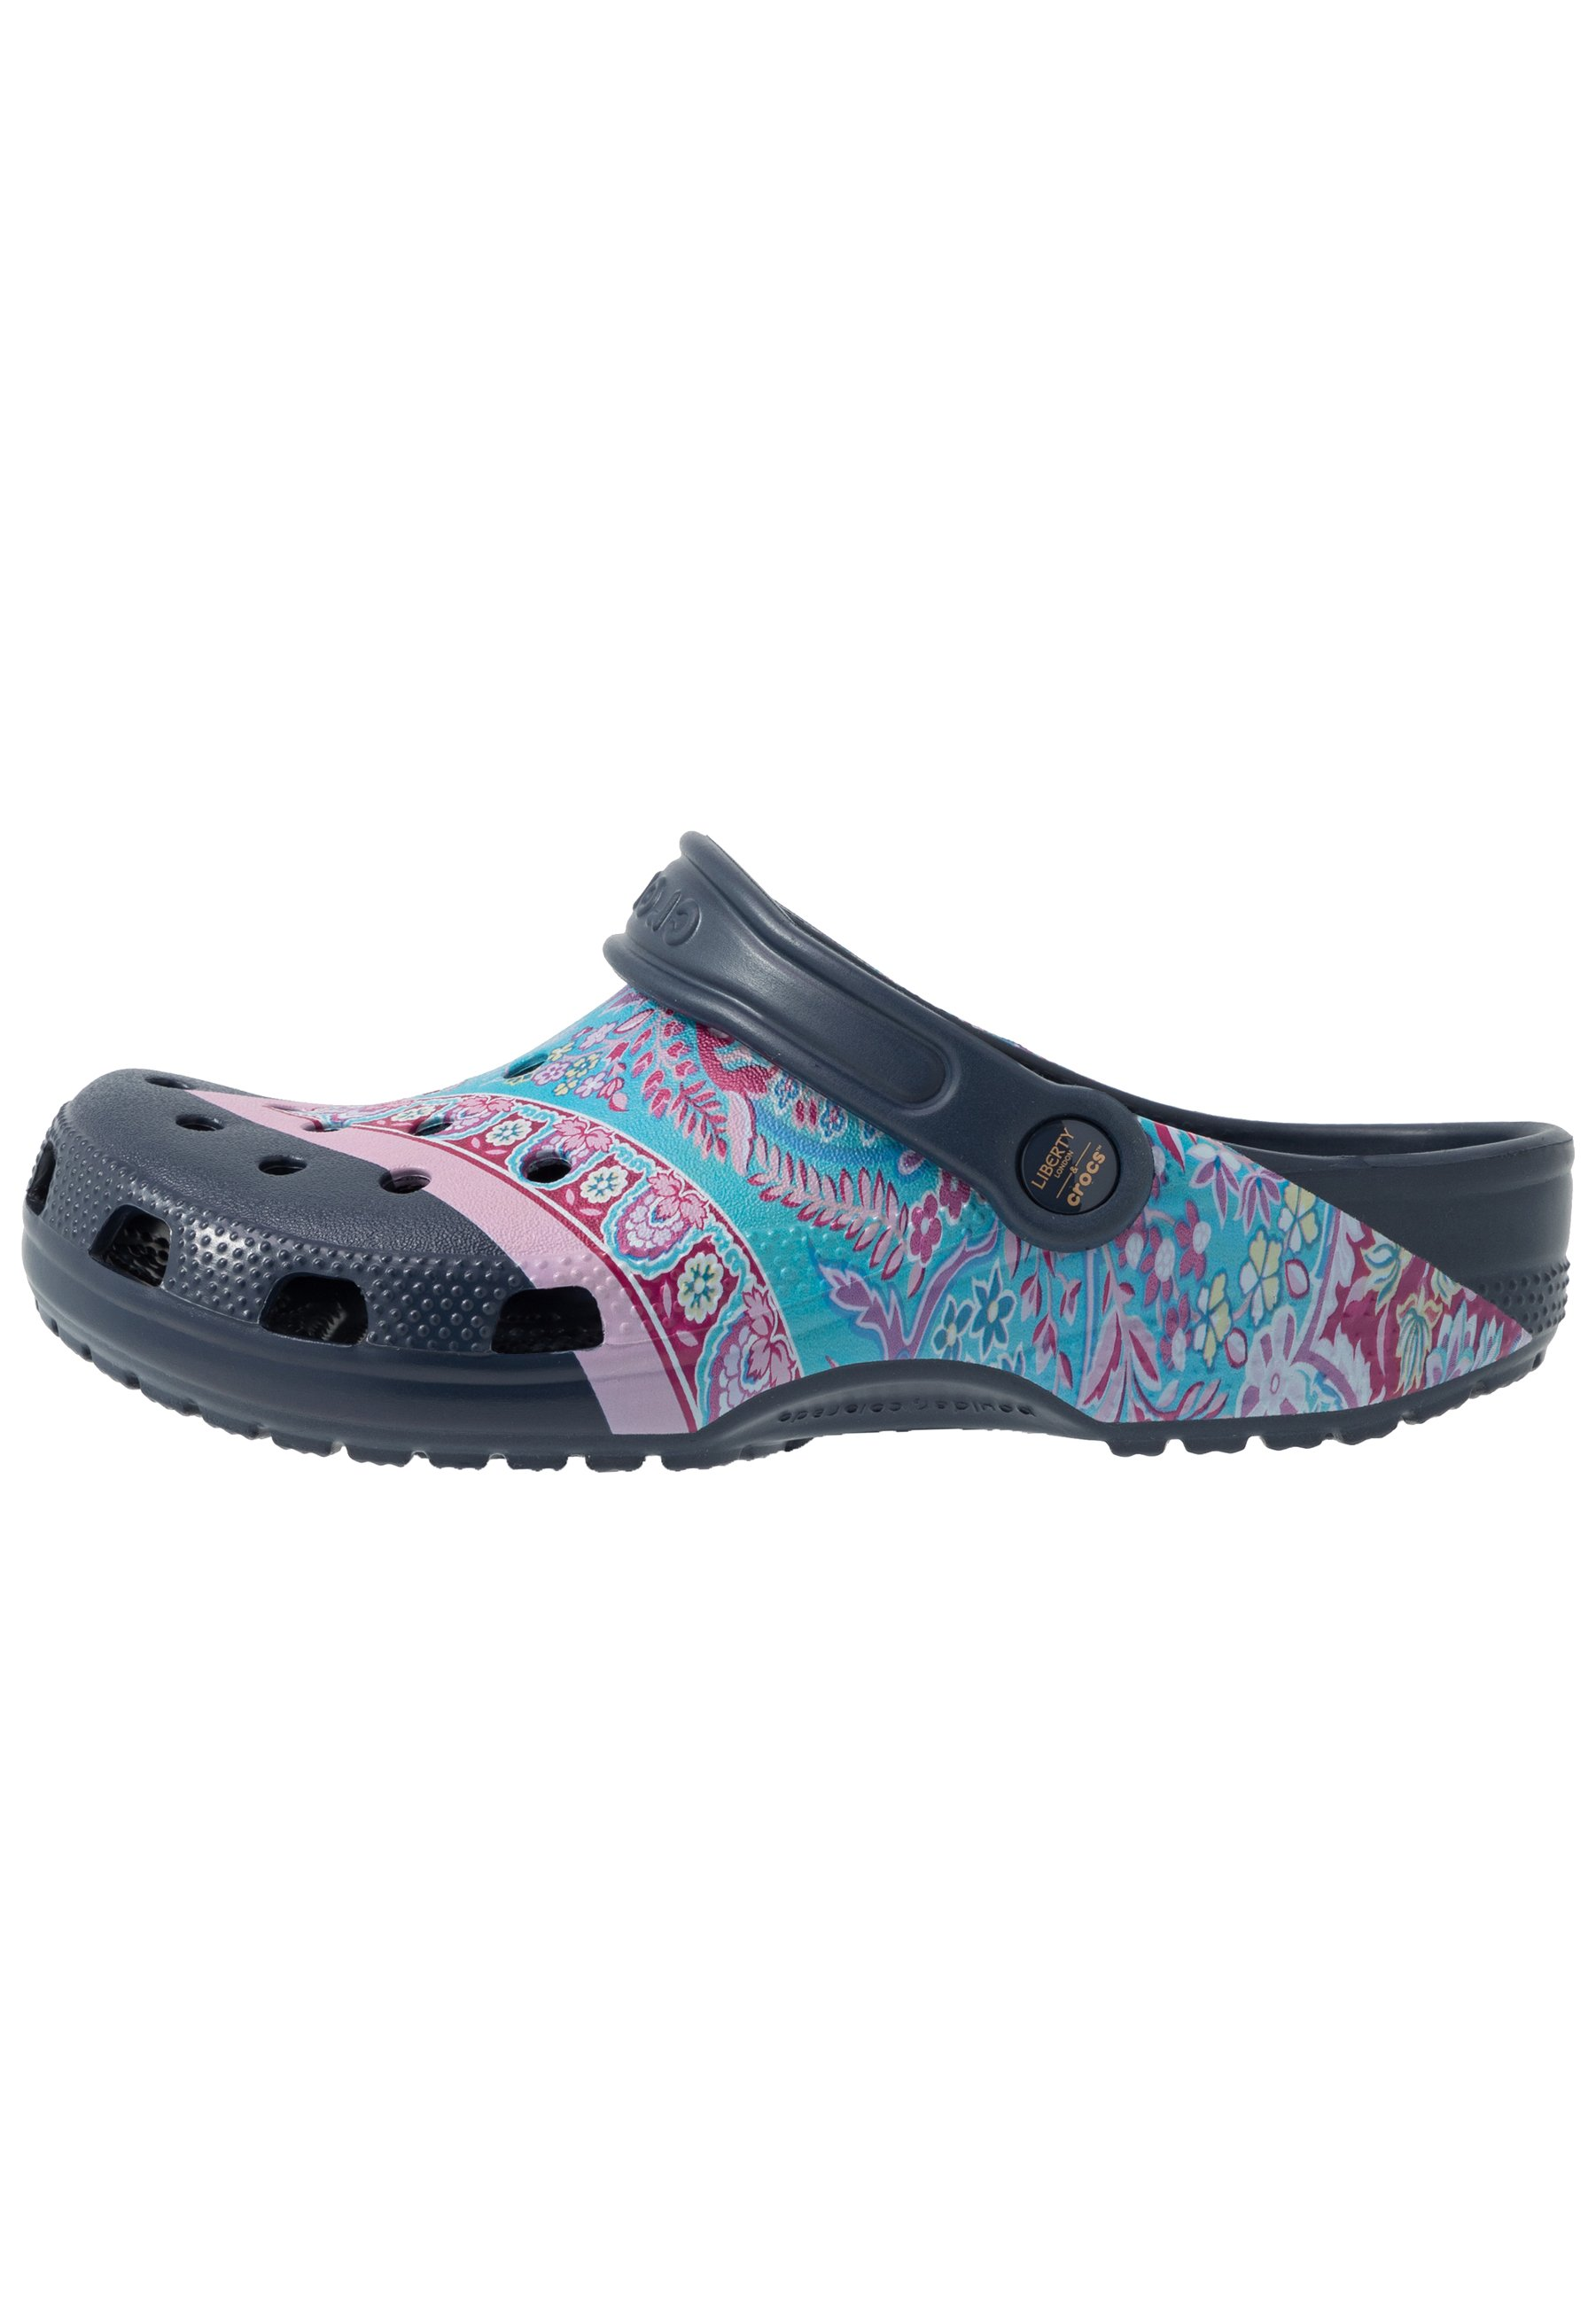 Crocs Classic Liberty Graphic - Badsandaler Navy